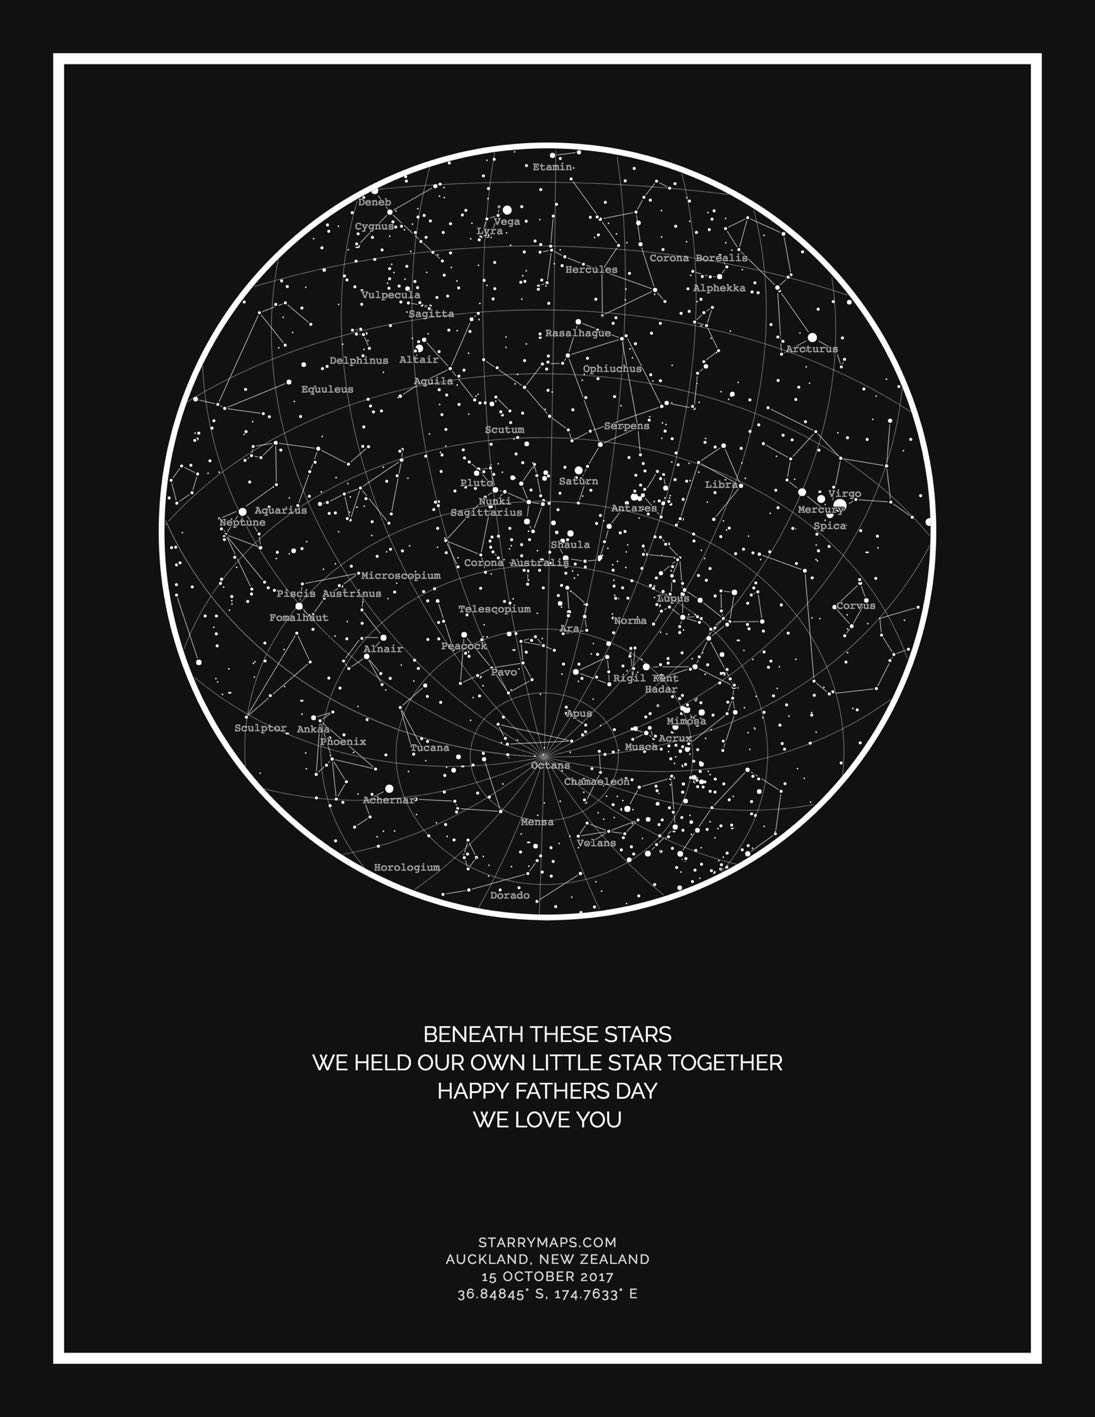 Night sky star map, black background, not framed, large